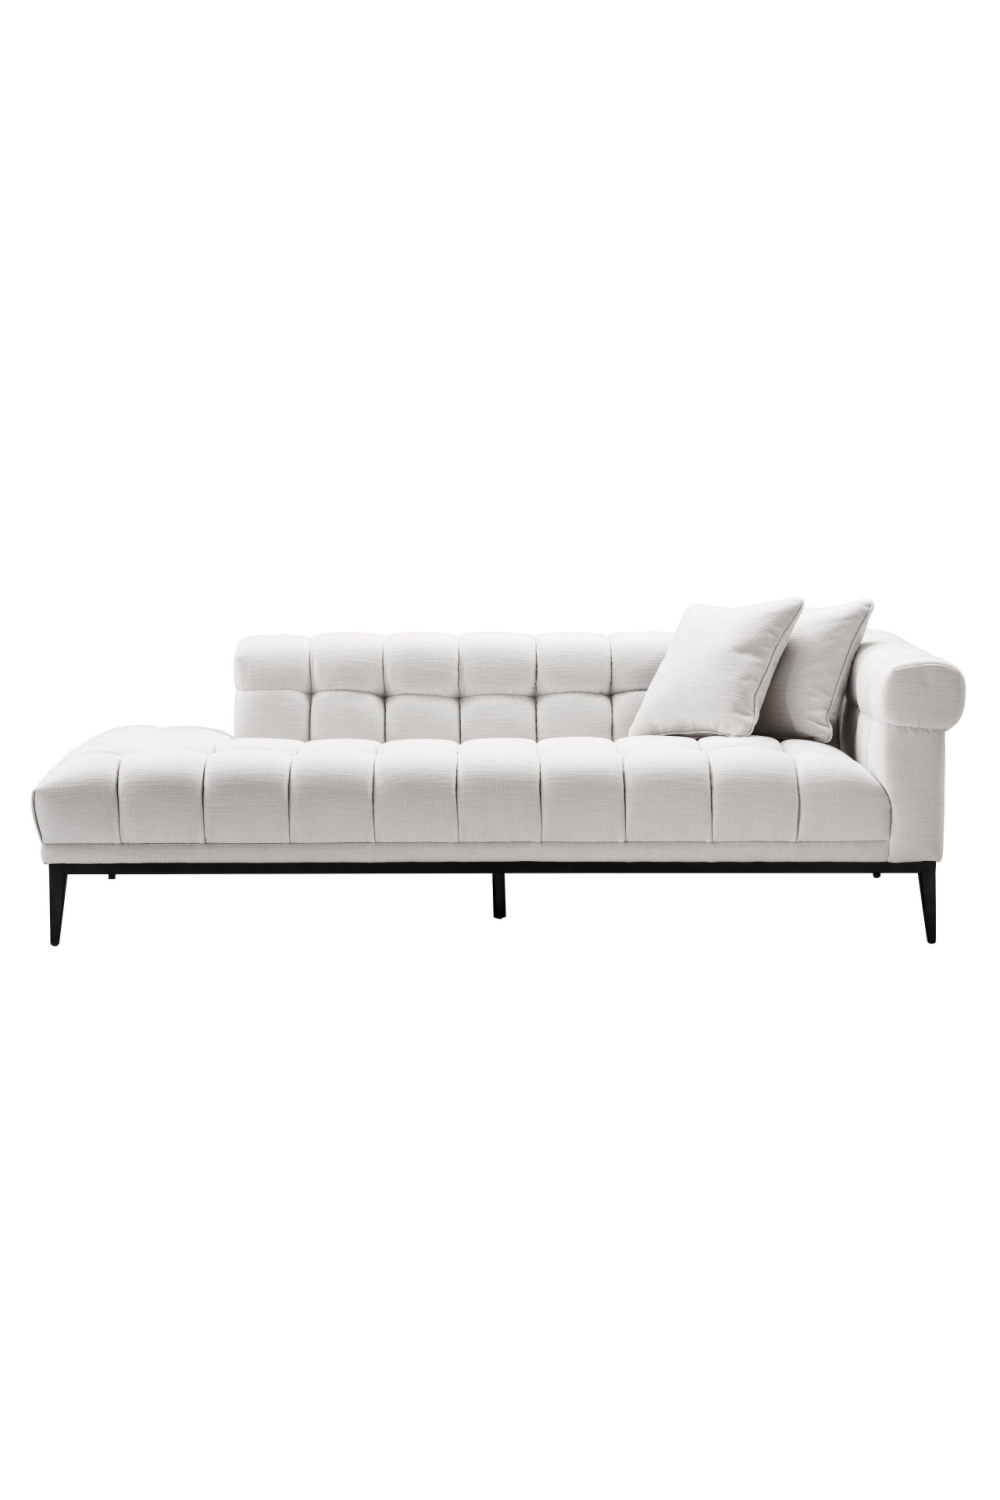 White Biscuit-Tufted Lounge Sofa | Eichholtz Aurelio - R